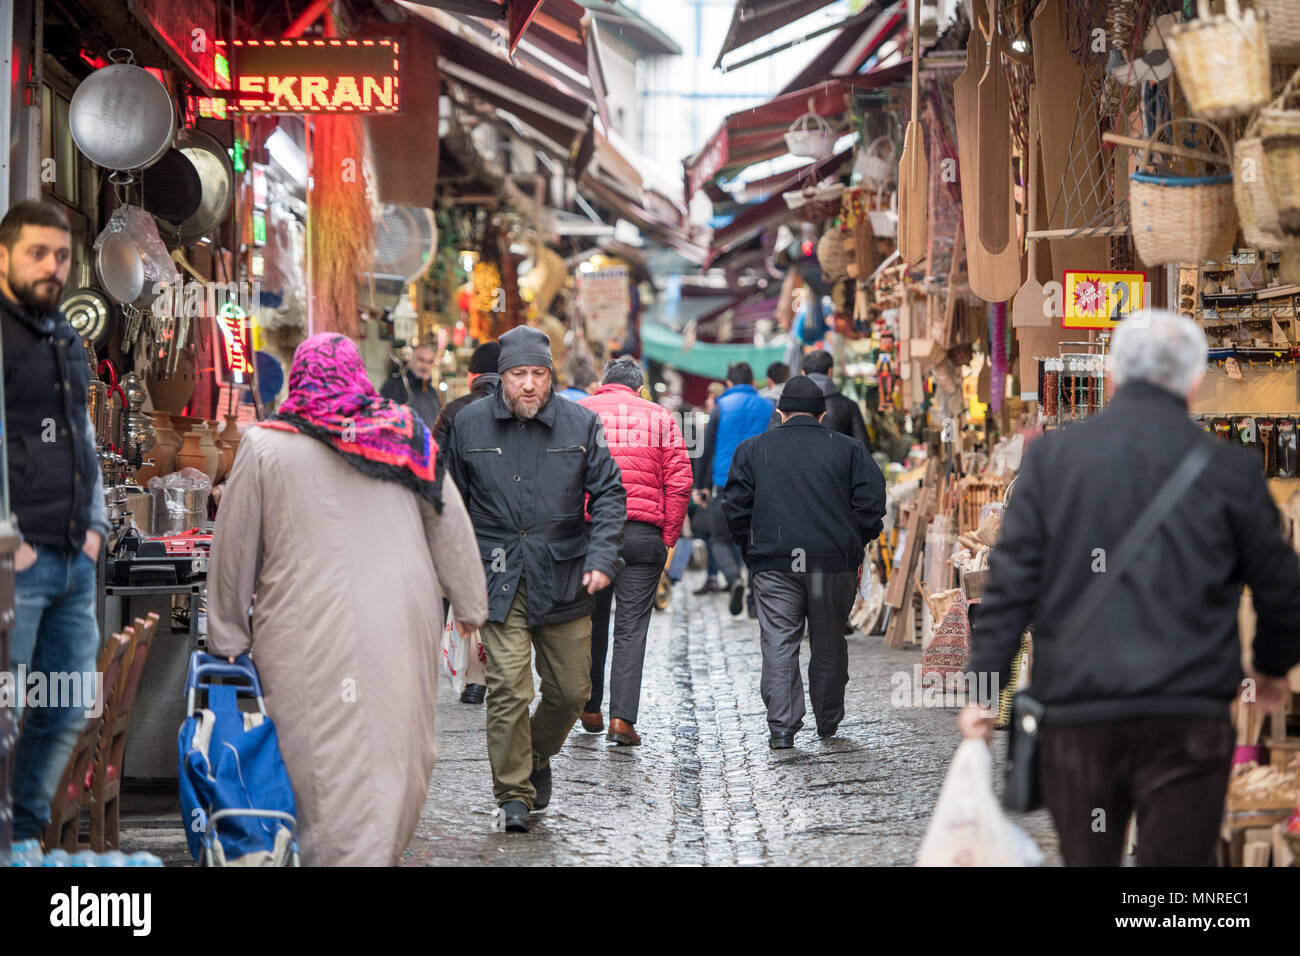 Shoppers walk along busy narrow street of outdoor marketplace selling various goods, Istanbul, Turkey Stock Photo